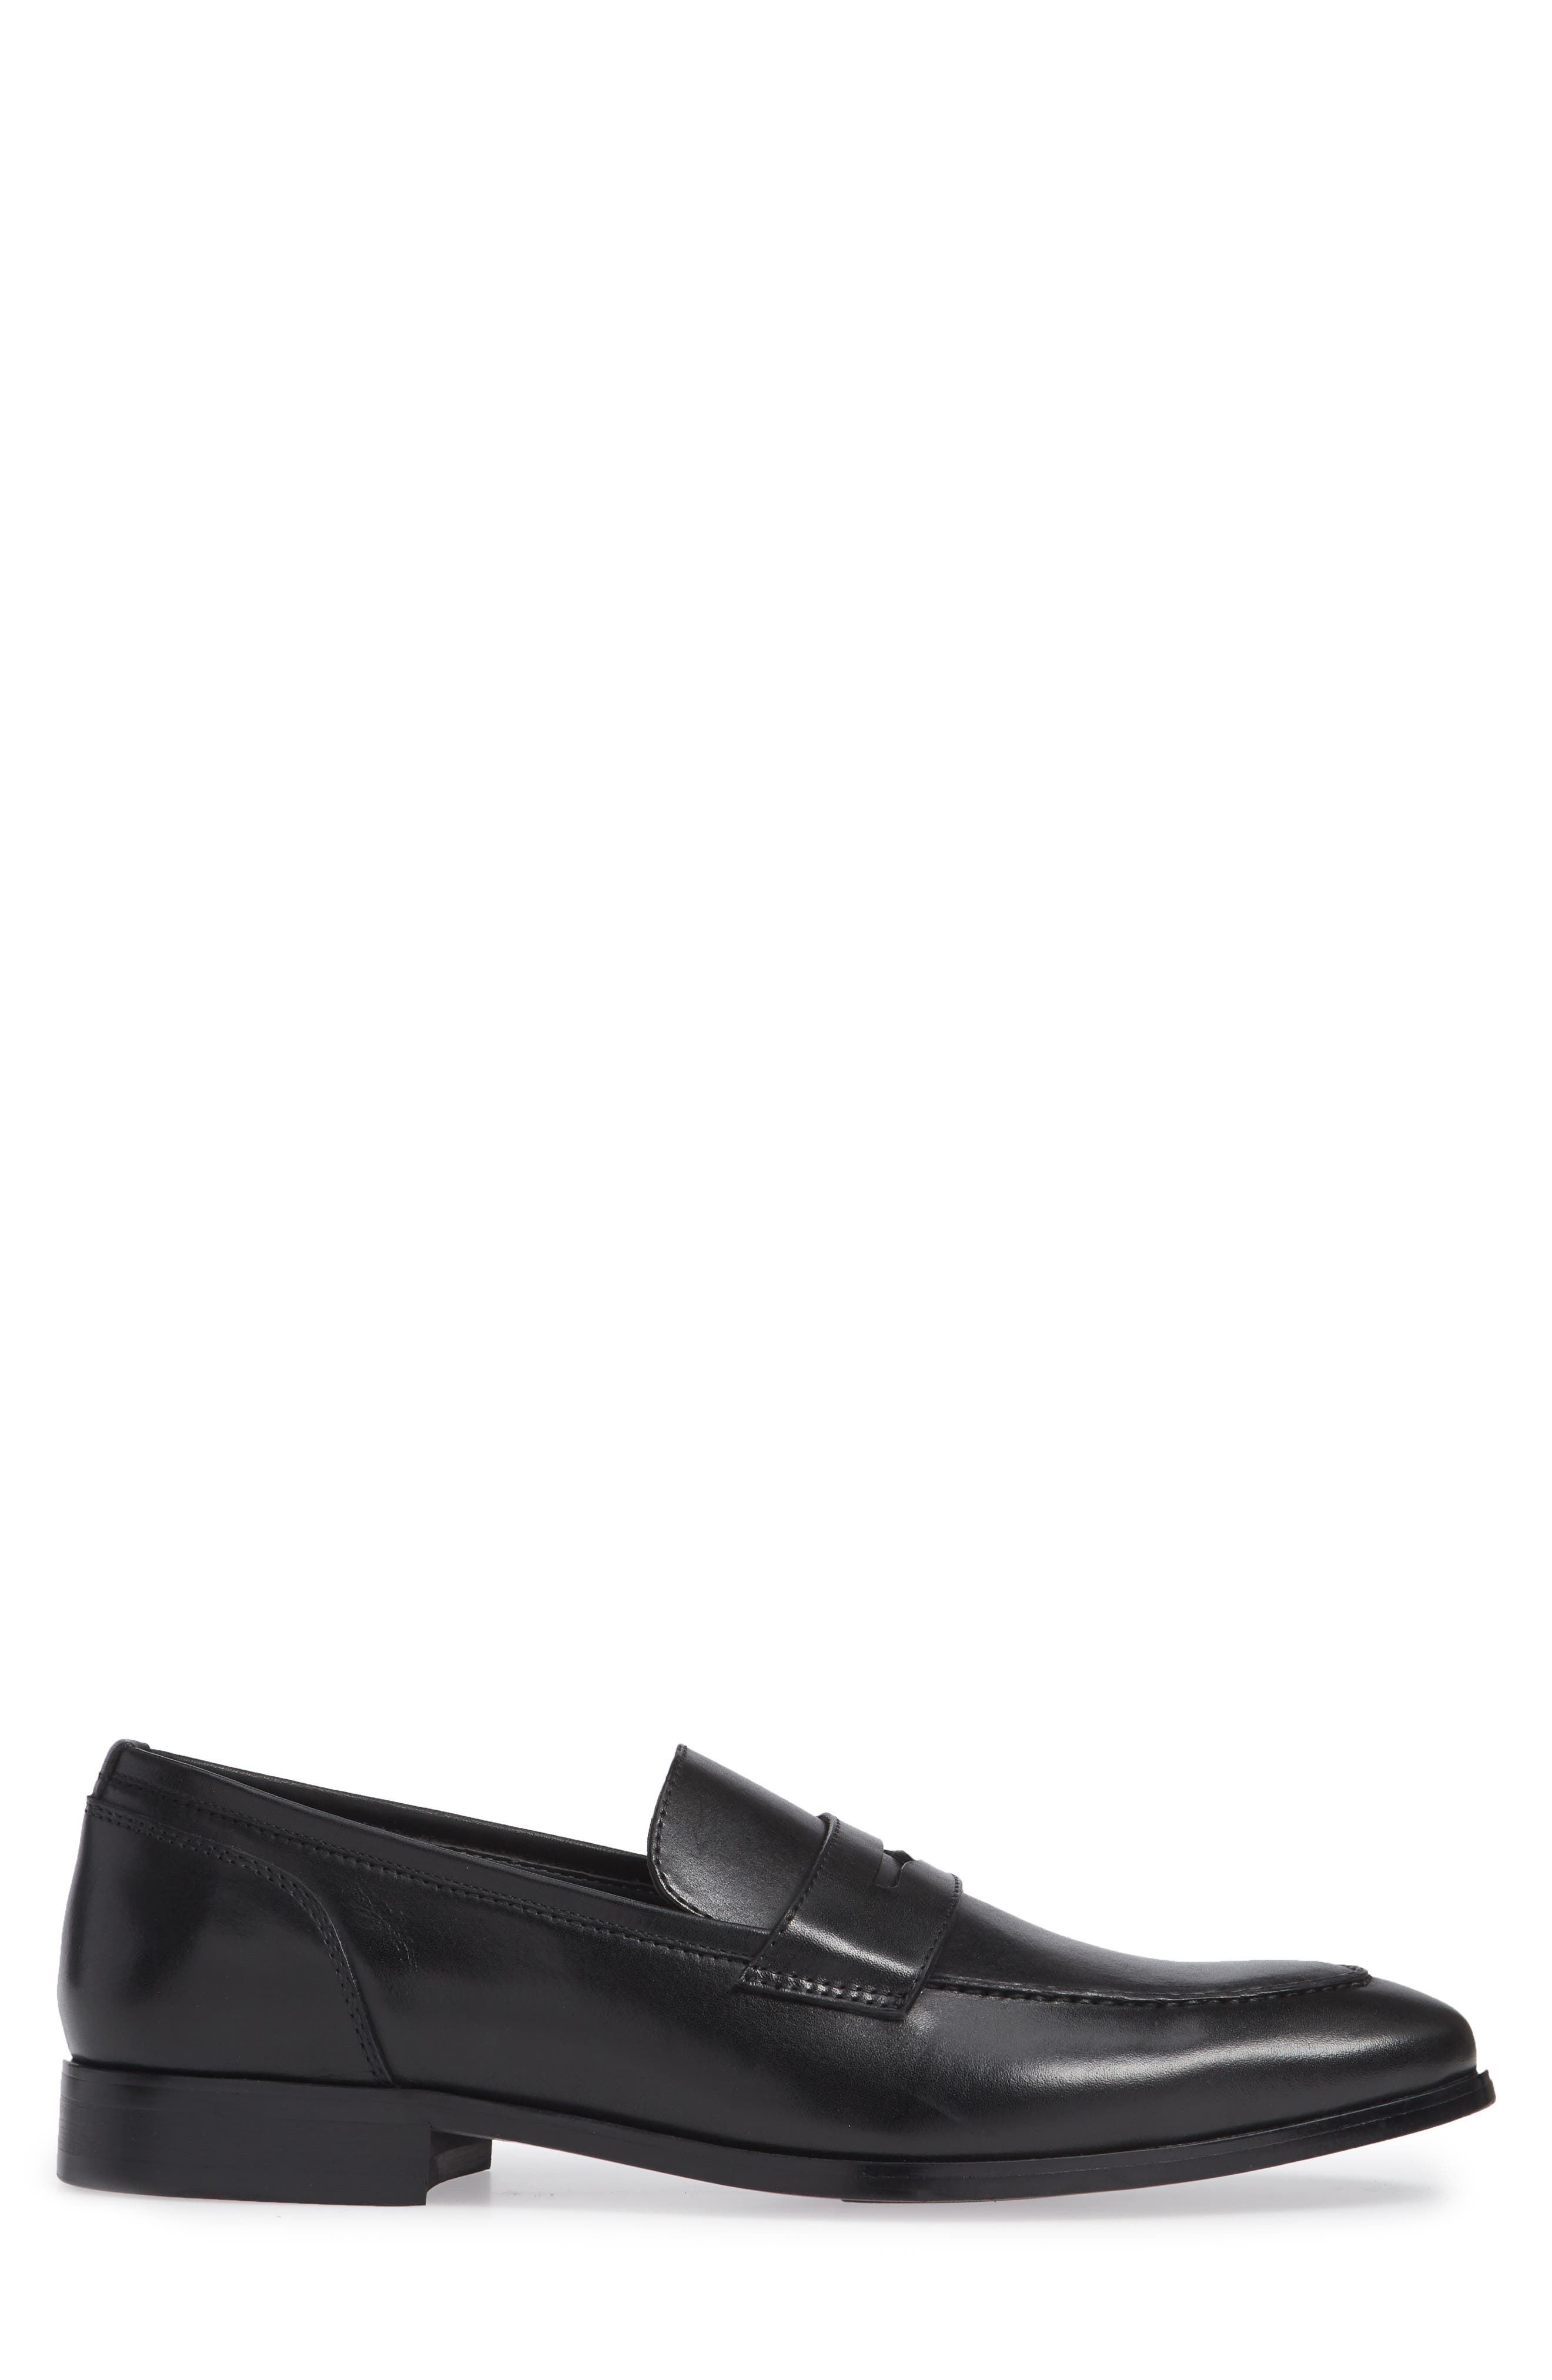 Denio Apron Toe Penny Loafer,                             Alternate thumbnail 3, color,                             BLACK LEATHER